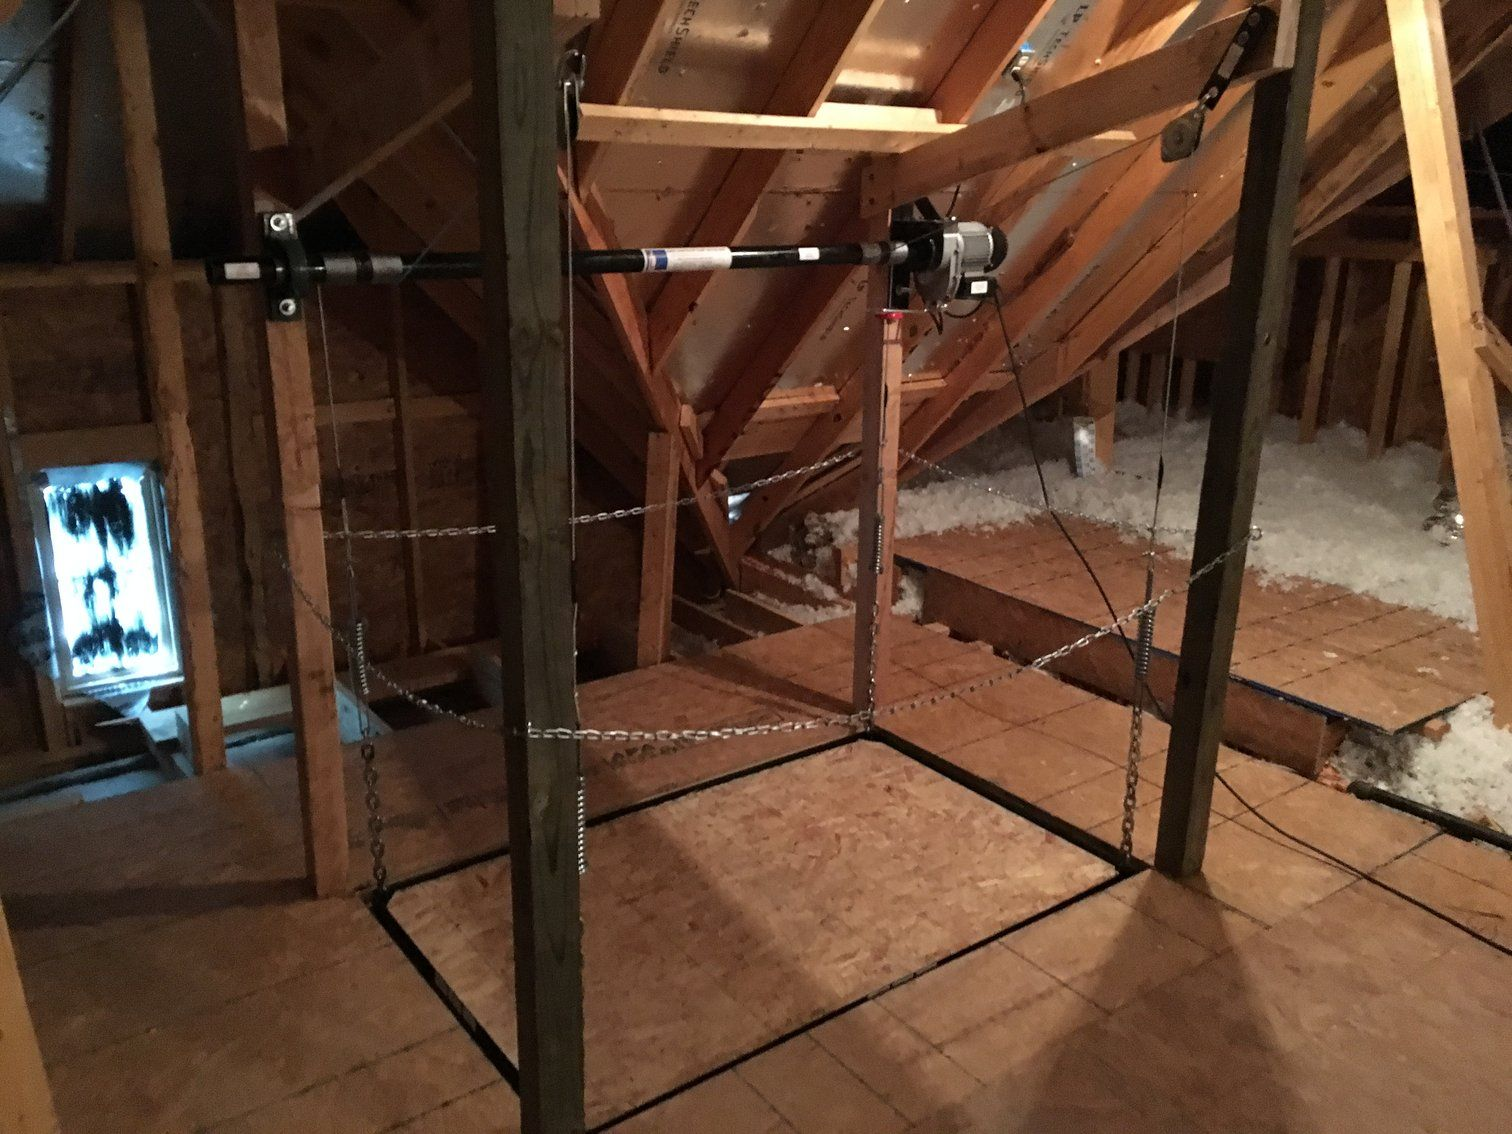 Attic Lift Diy 300 Lbs Post Style Lift In 2019 Attic Space Garage Storage